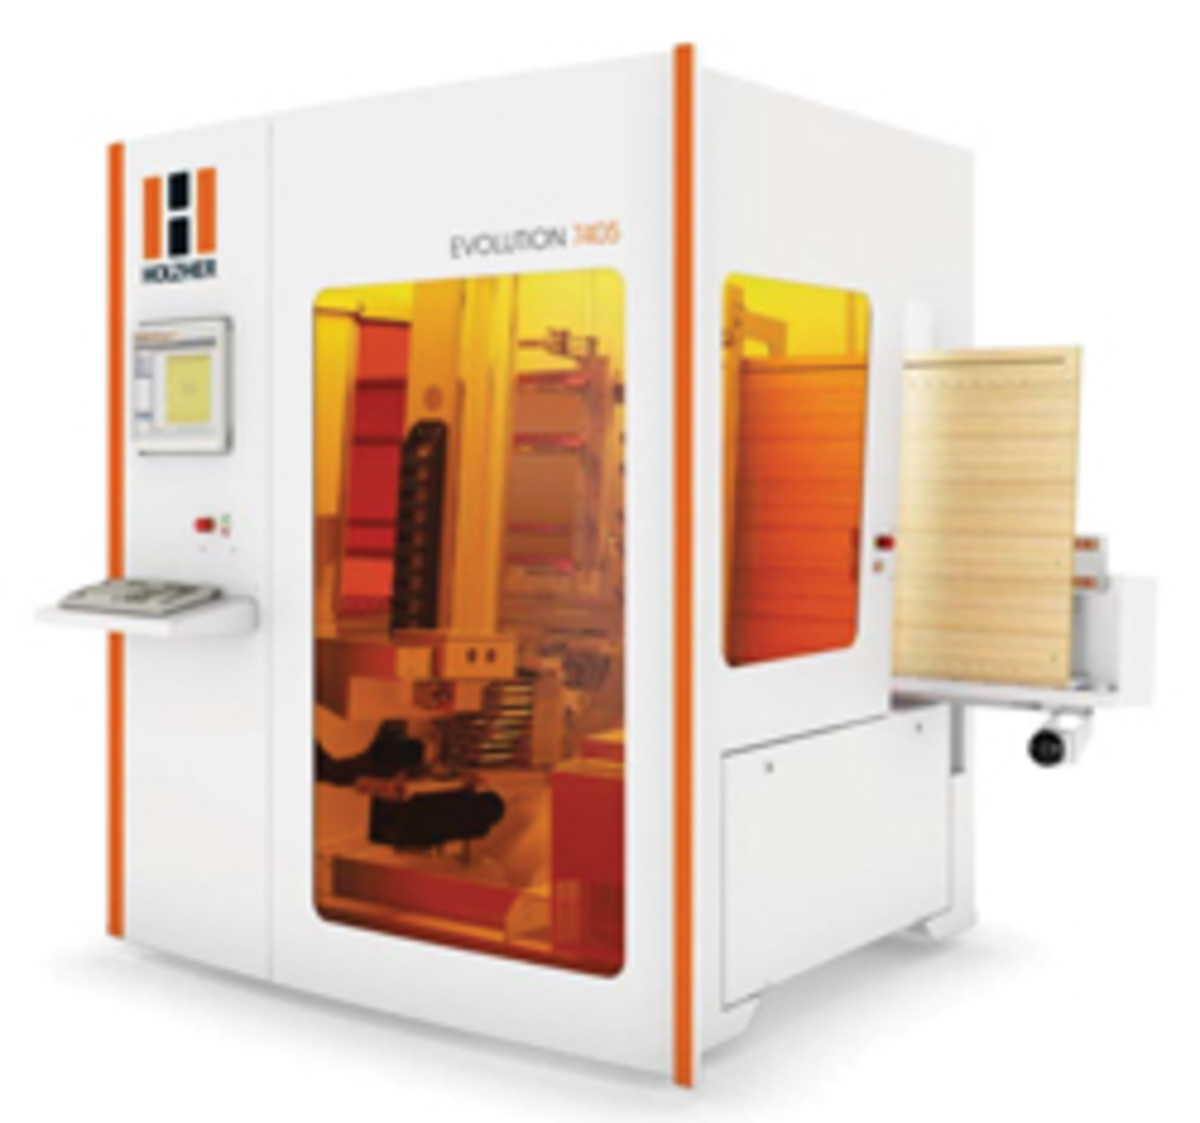 CNC centers, such as the Evolution 7405 from Holz-Her, feature a vacuum clamping system to hold challenging workpieces and mill difficult shapes.